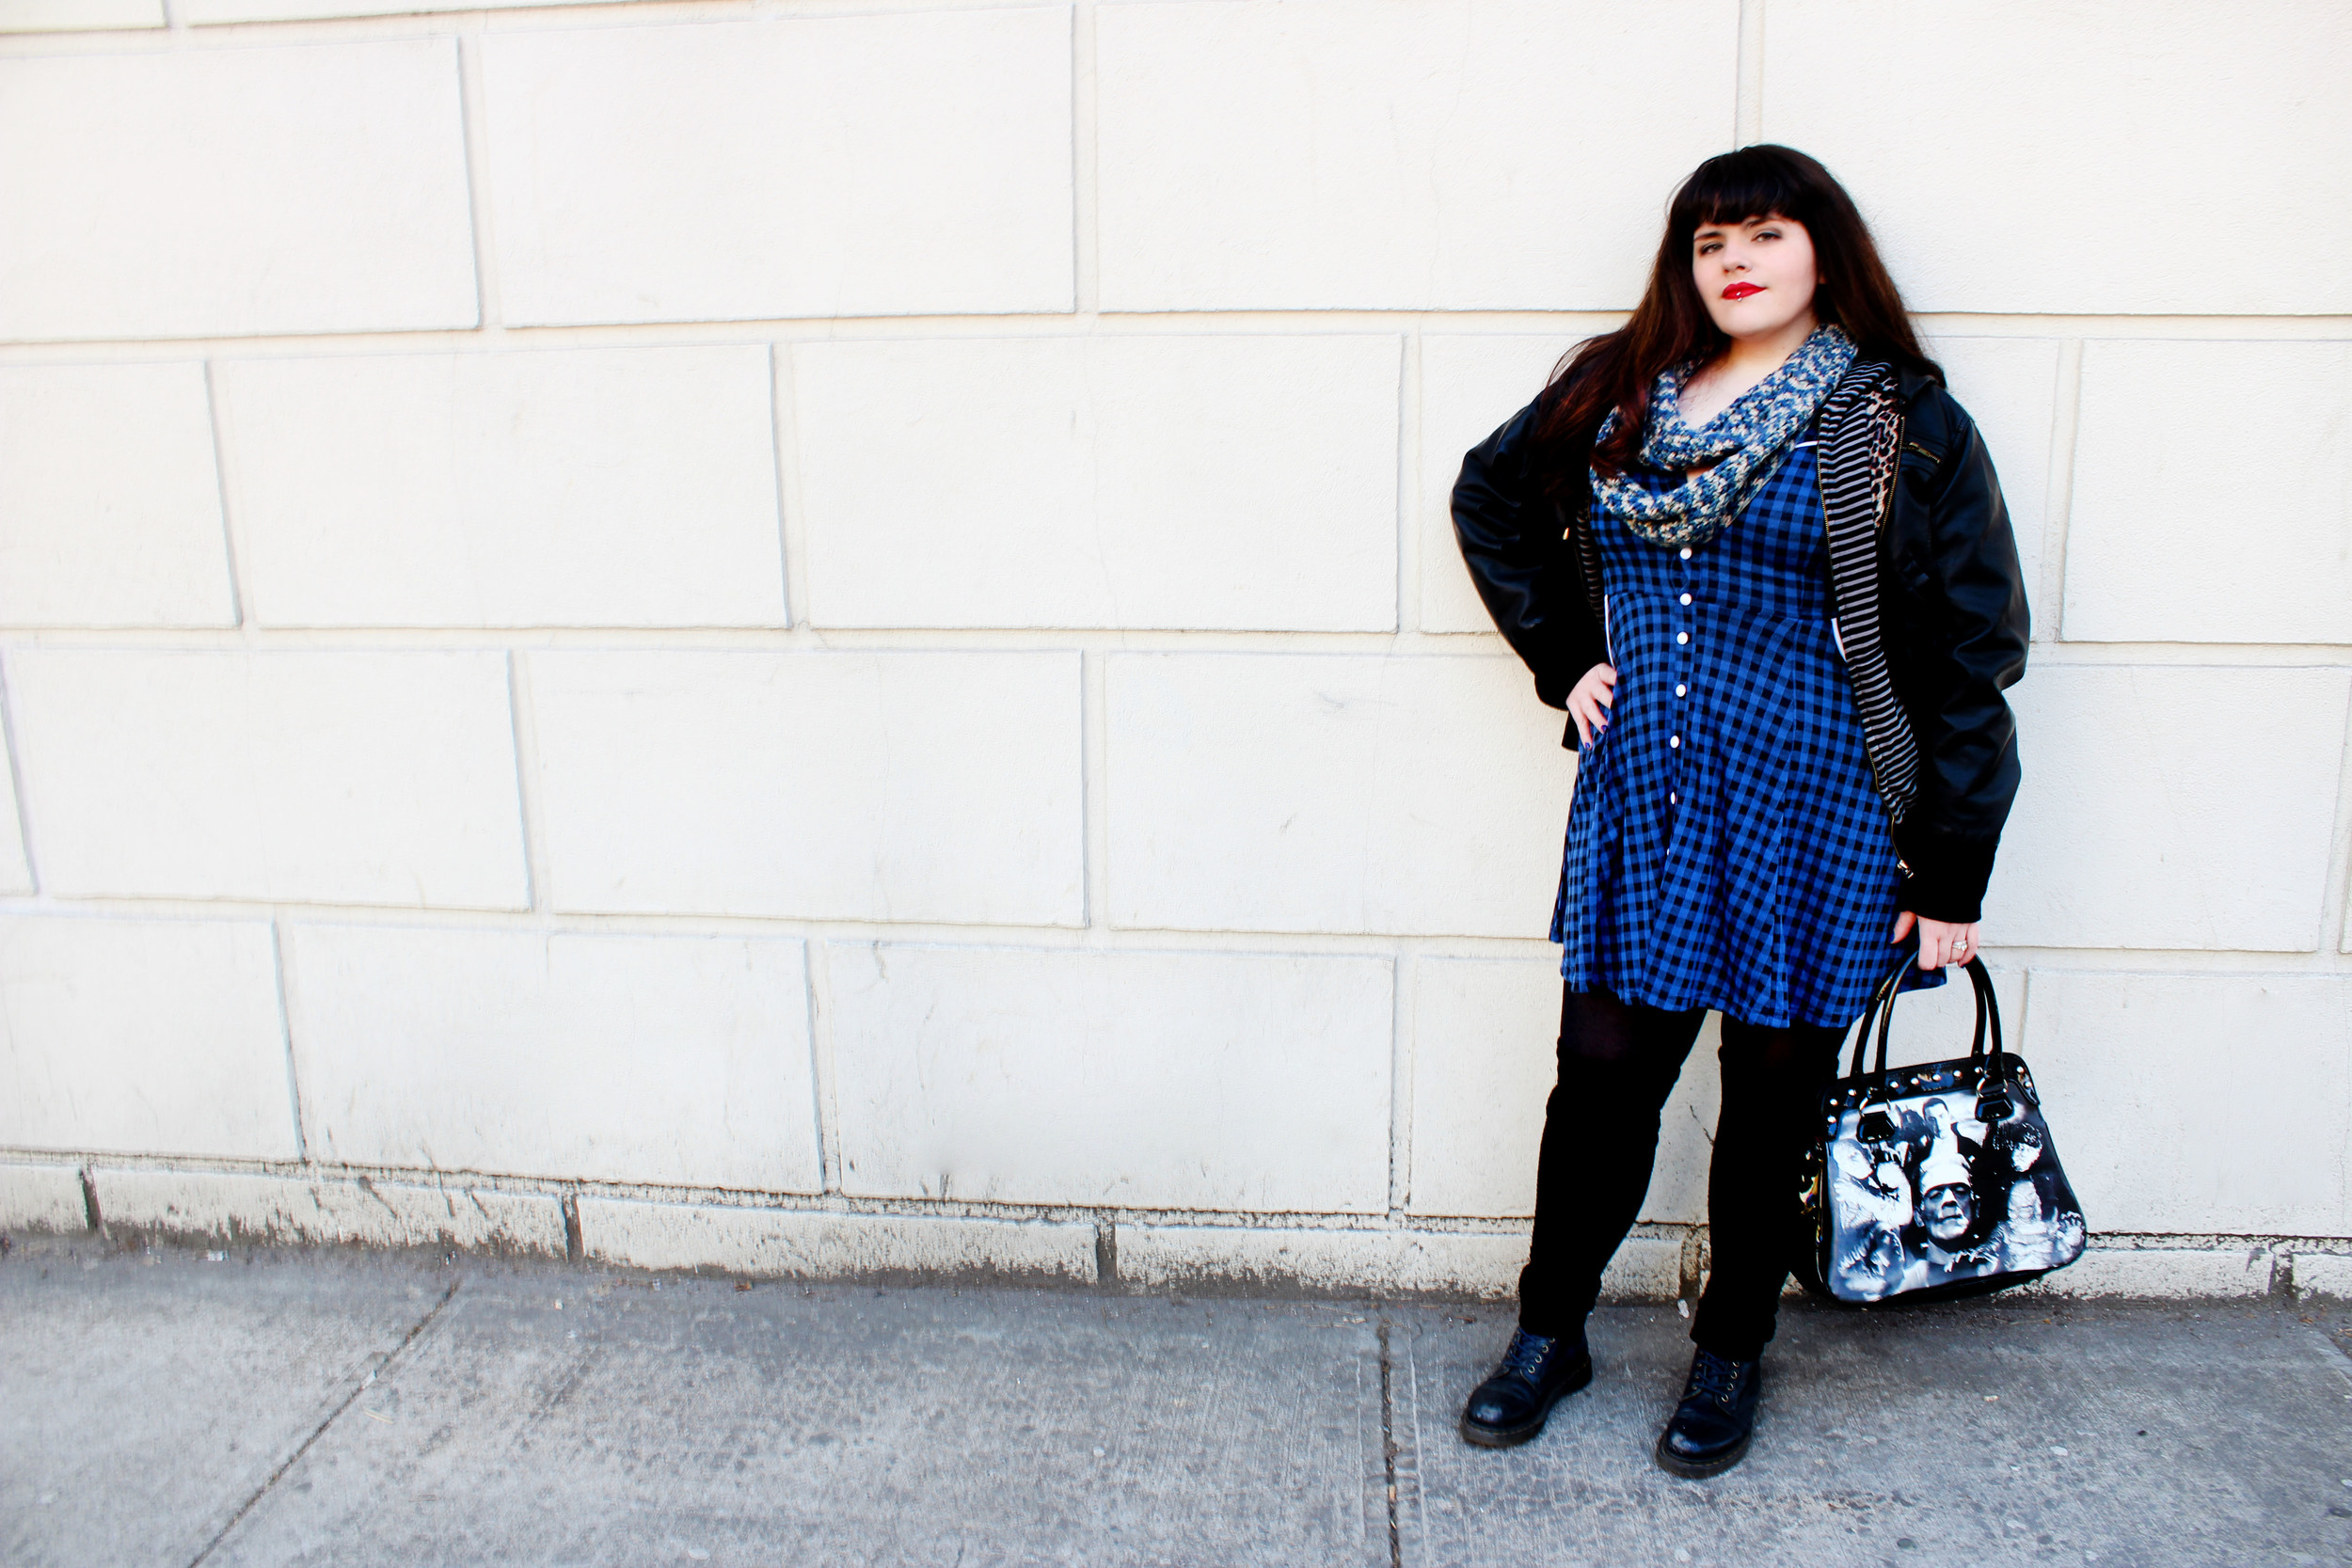 What She's Wearing:  Jacket/ Forever21 , Hoddie/???, Scarf/  Hatsscarfsmittensohmy , Bag/  Sourpussclothing.com  , Dress/  Sourpussclothing.com  , Tights/???, Leg-Warmers/???, Boots/ DrMartens